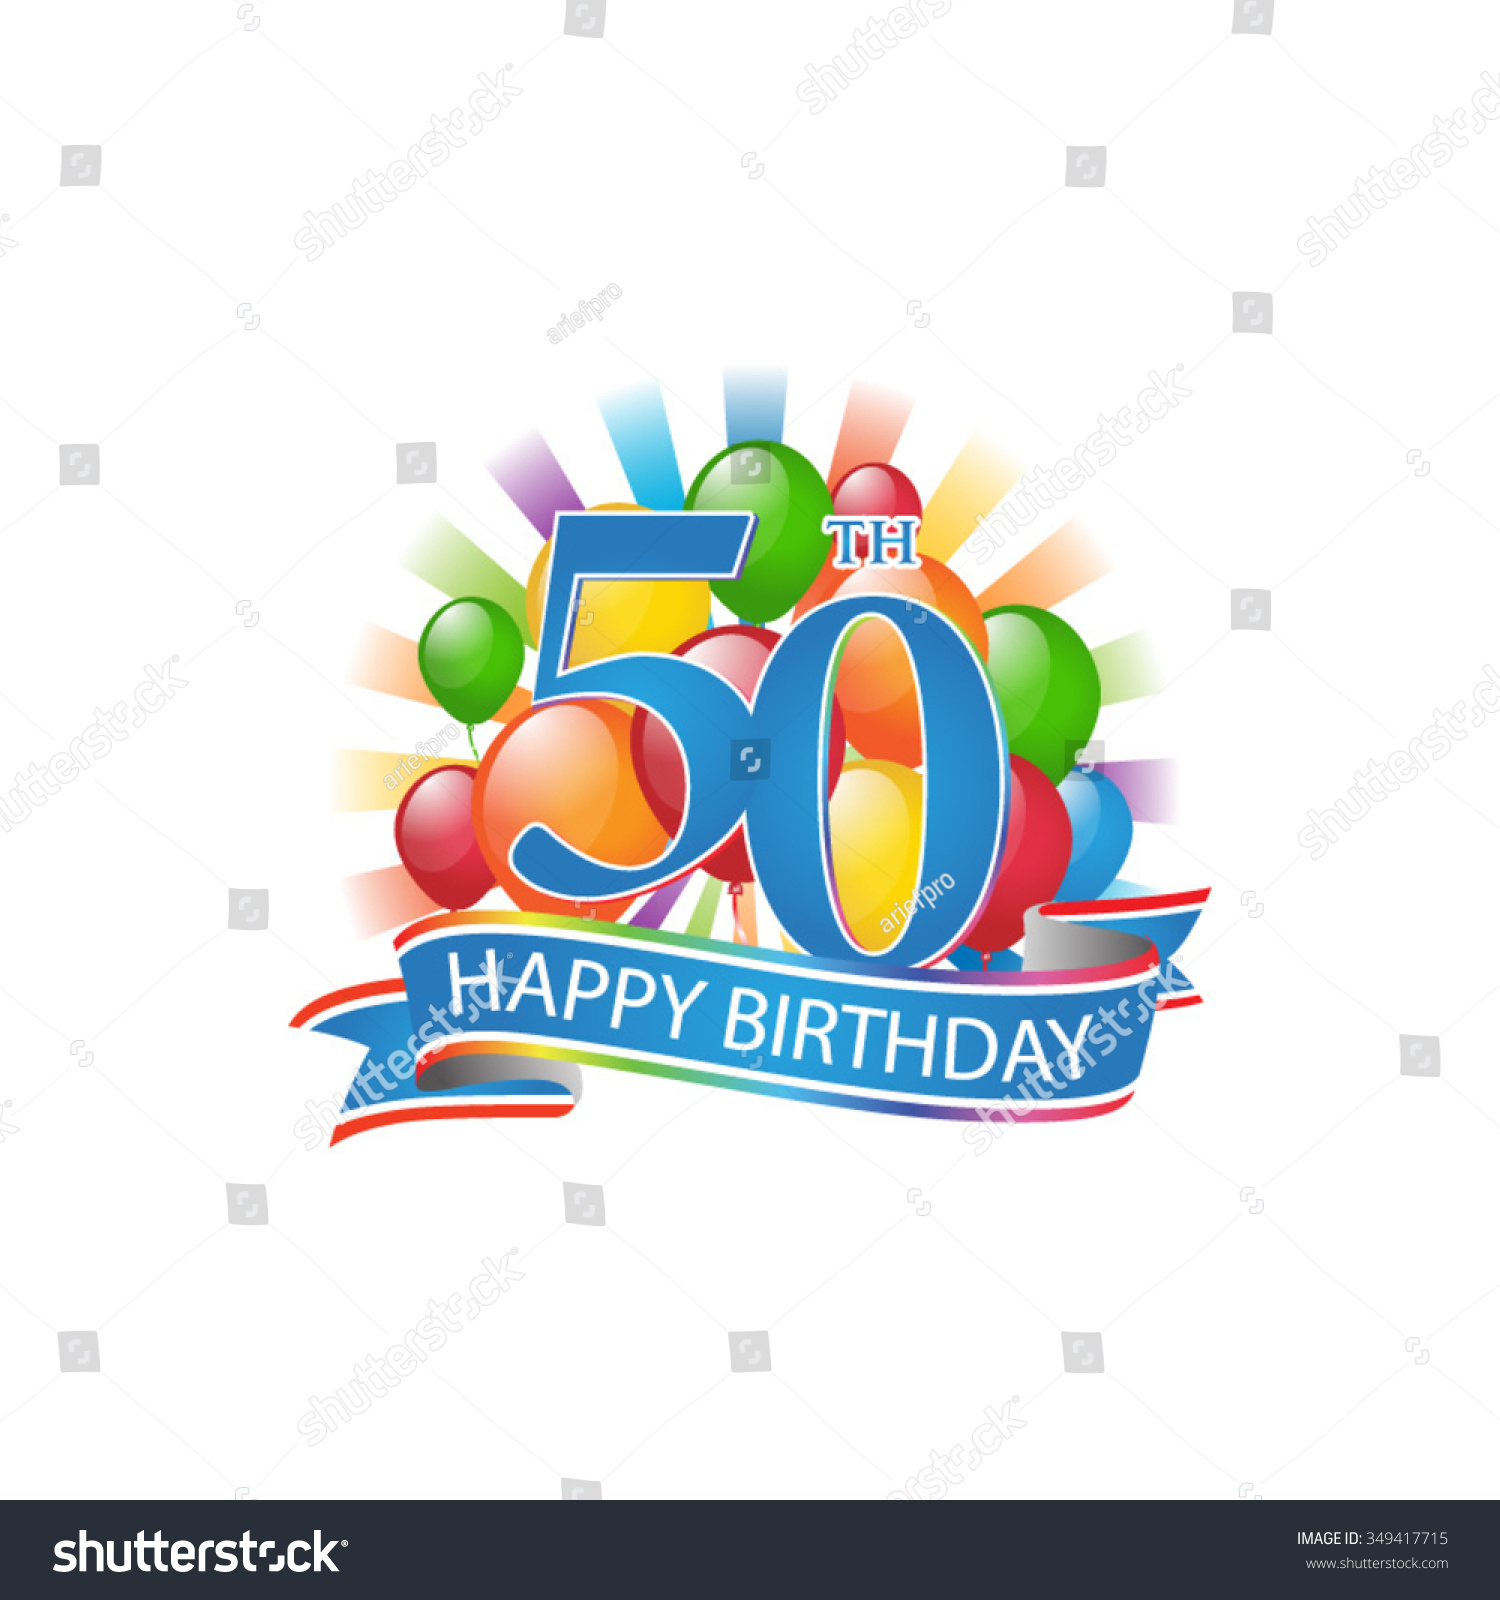 50th Colorful Happy Birthday Logo With Balloons And Burst